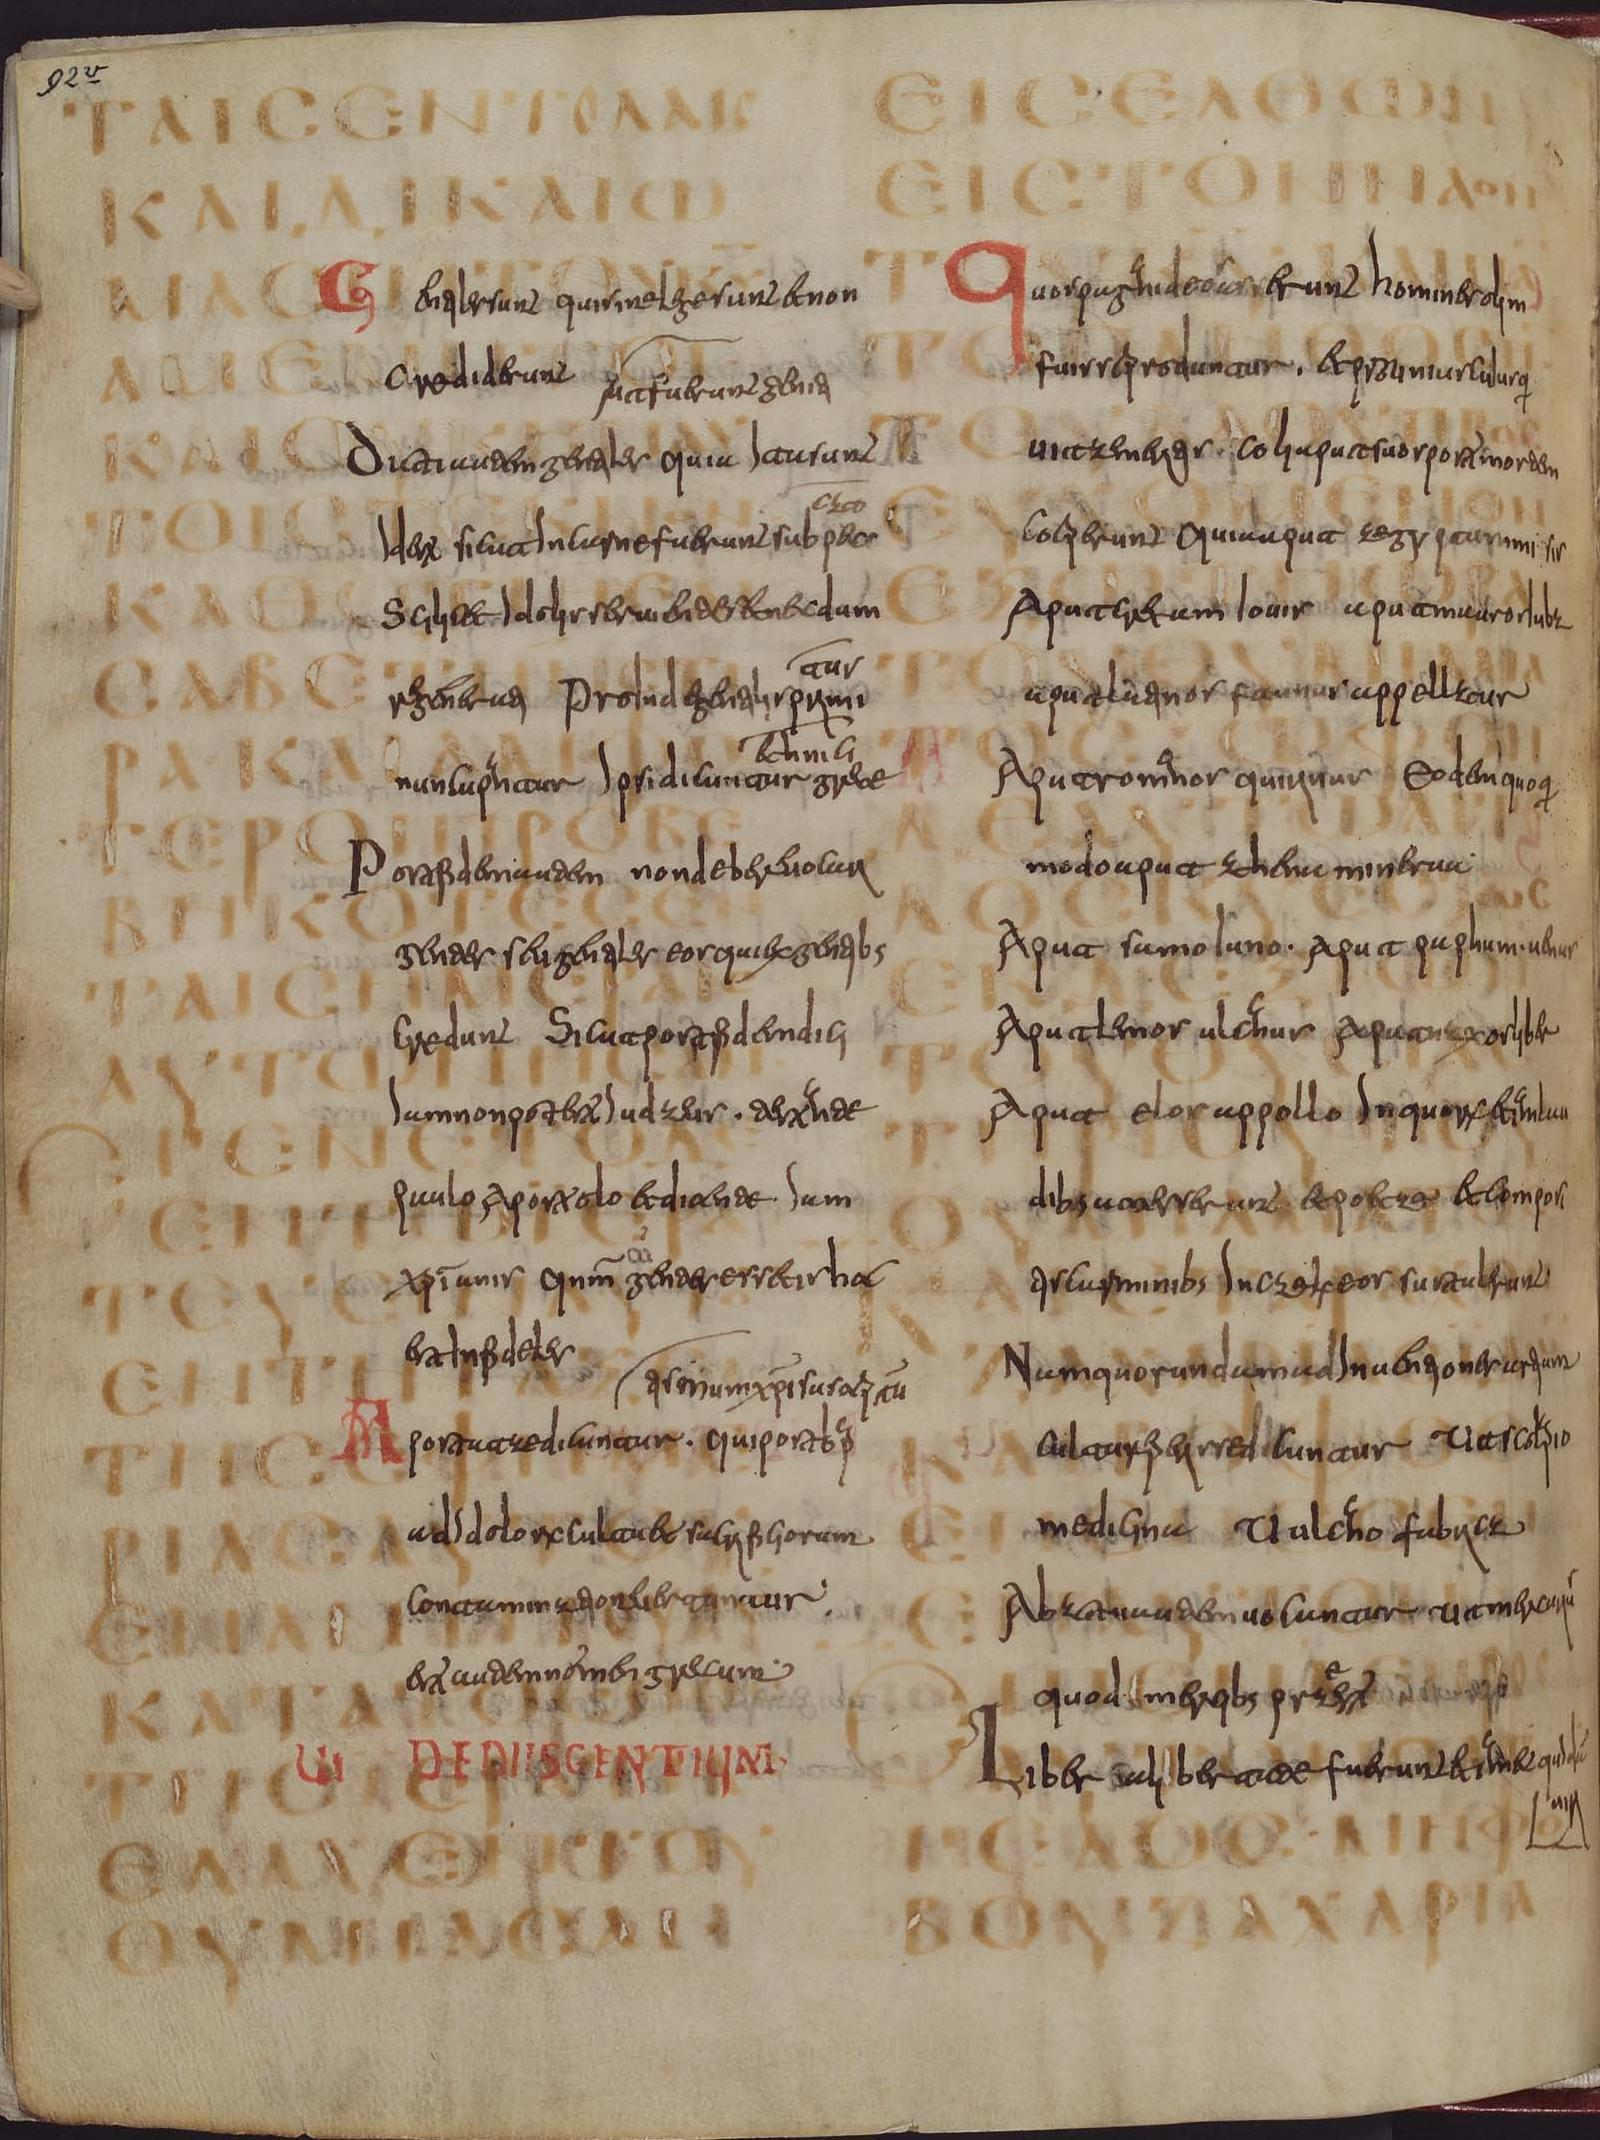 The upper text is from the 13th century and the lower text is from the 6th century.